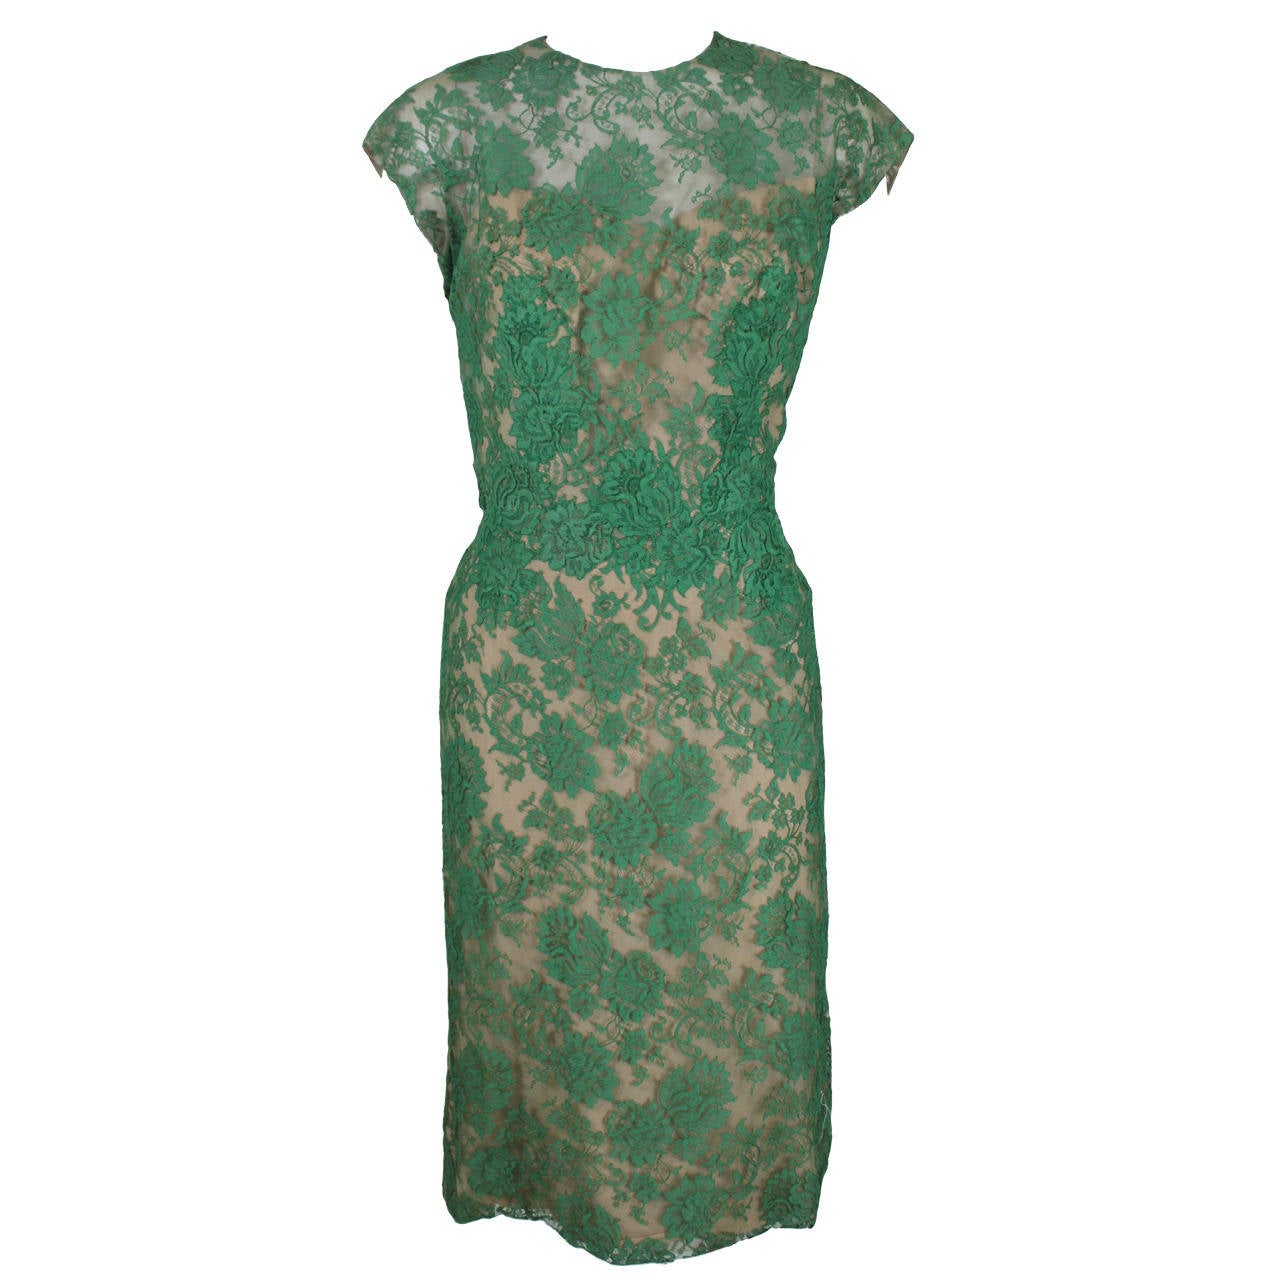 Peggy Hunt 1950s Green Lace Illusion Dress 1